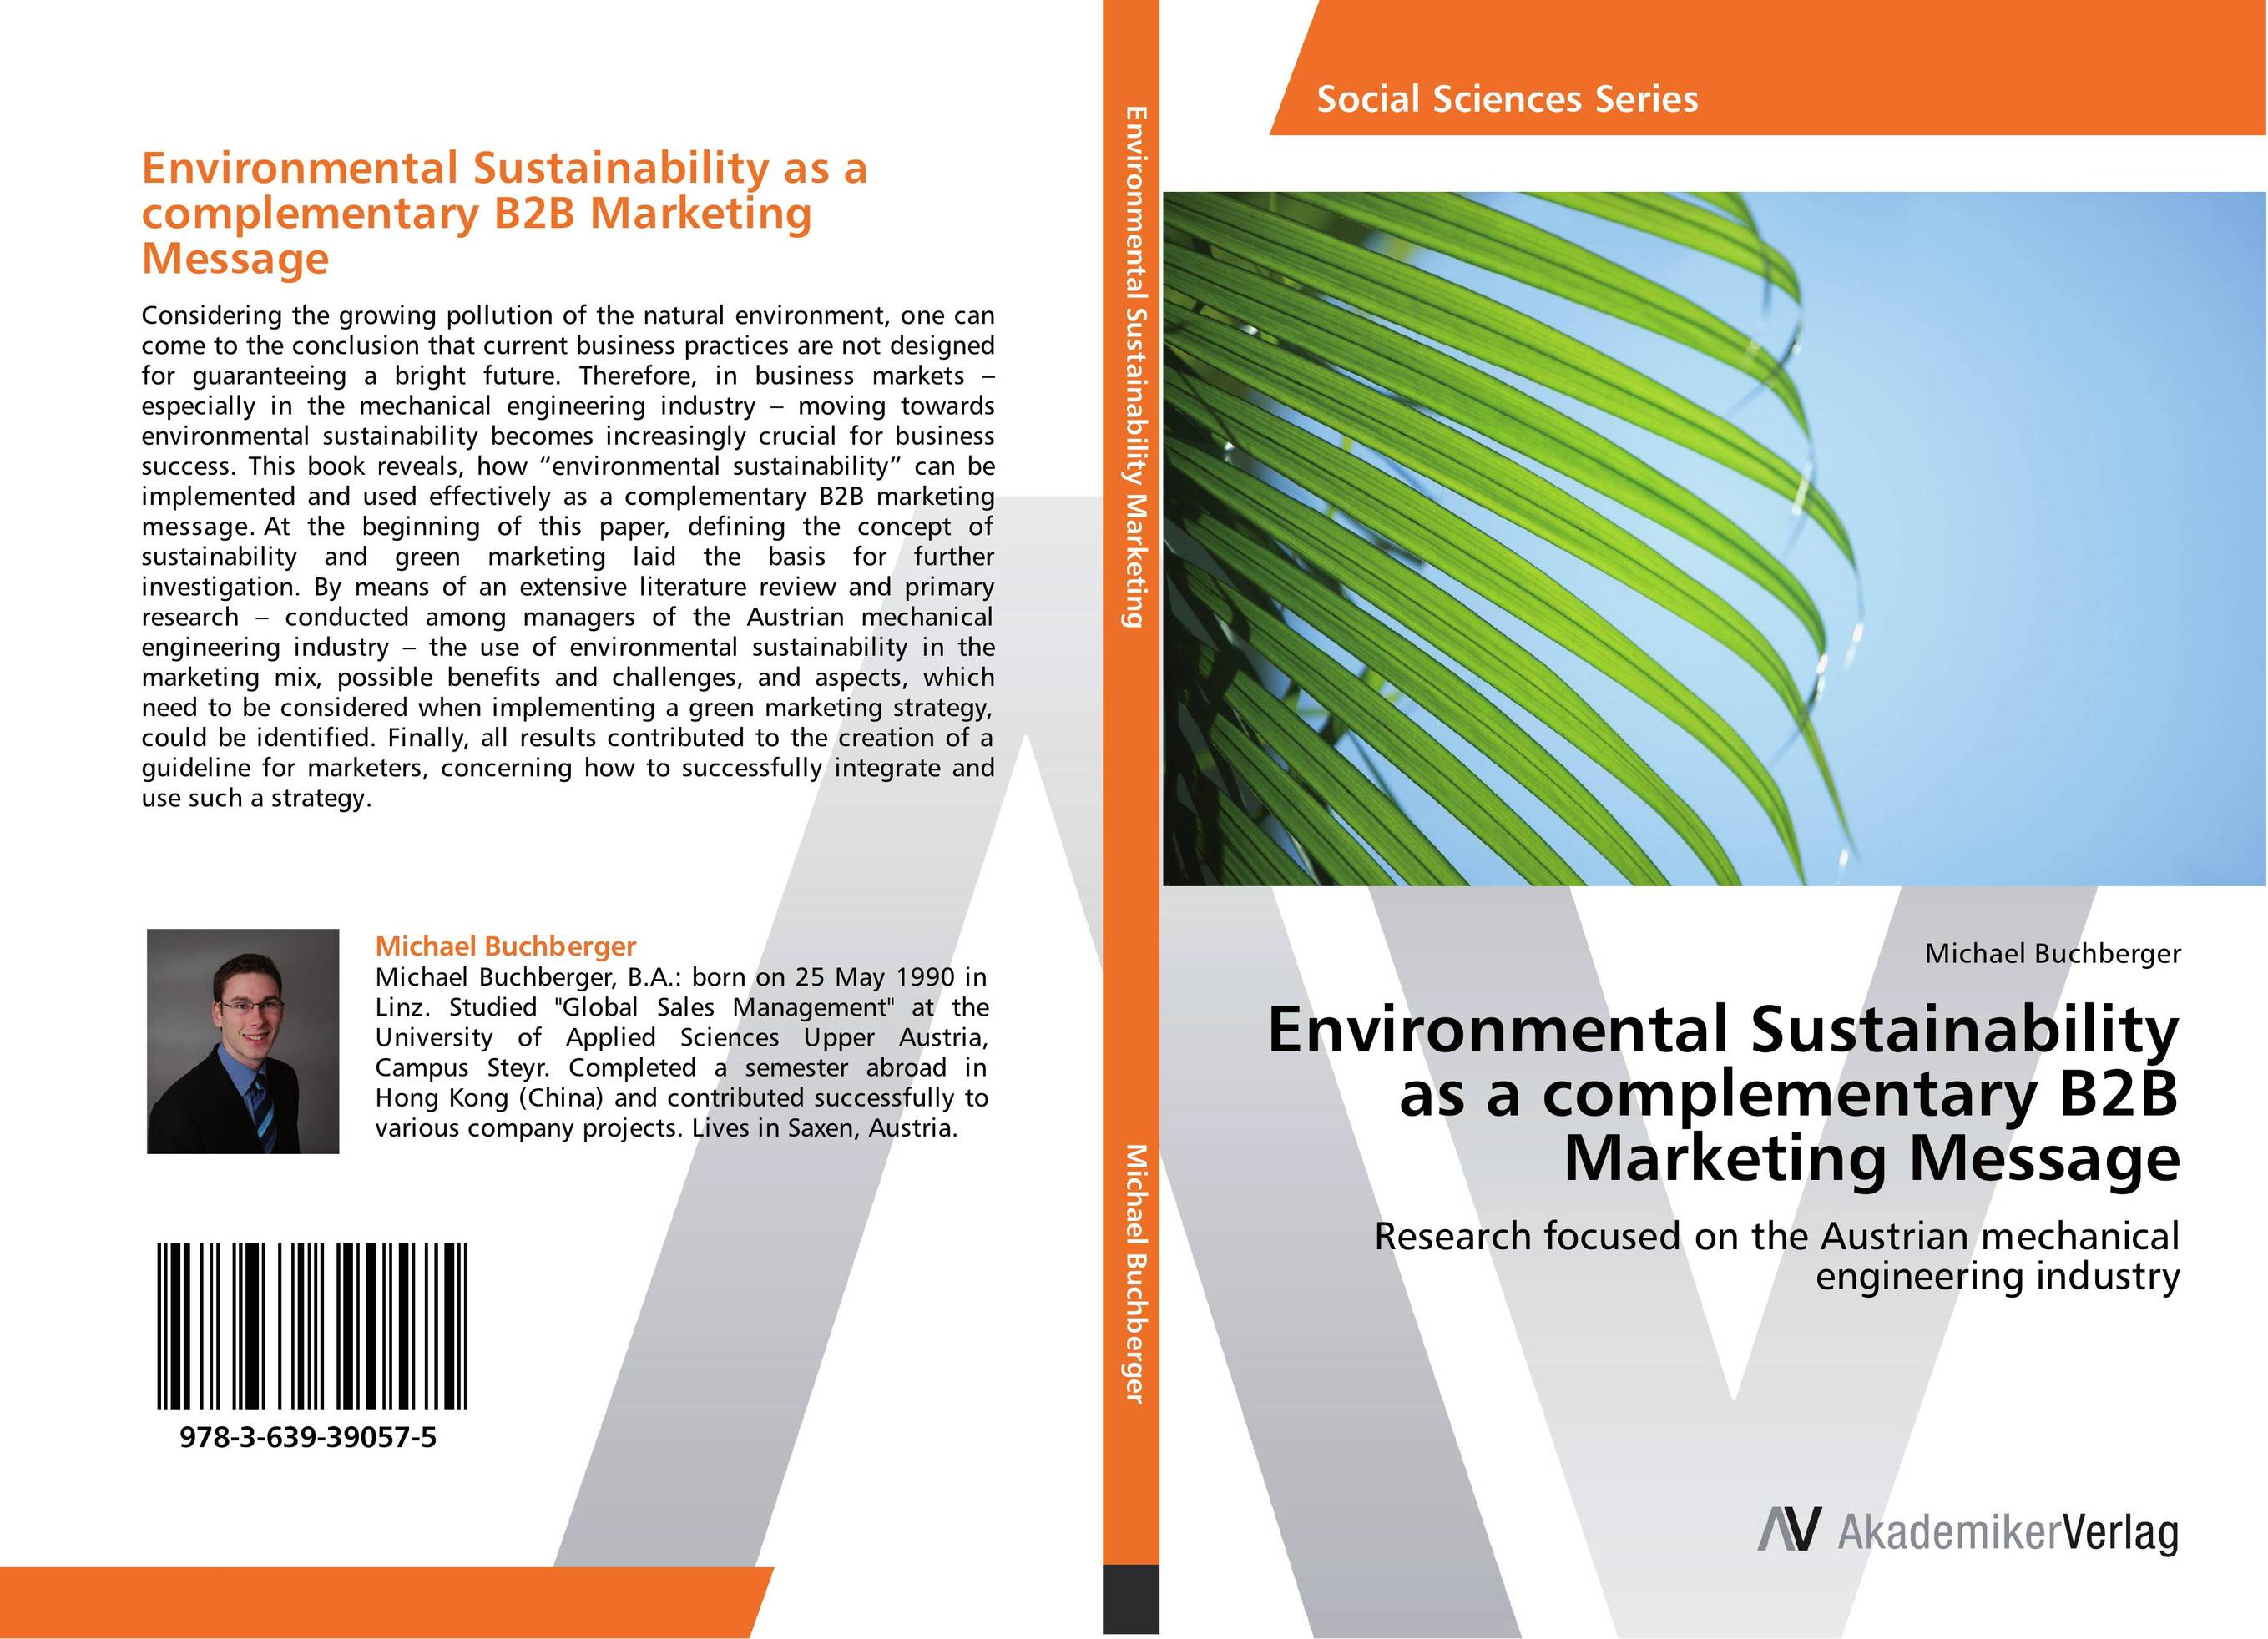 Environmental Sustainability as a complementary B2B Marketing Message considering environmental war crime